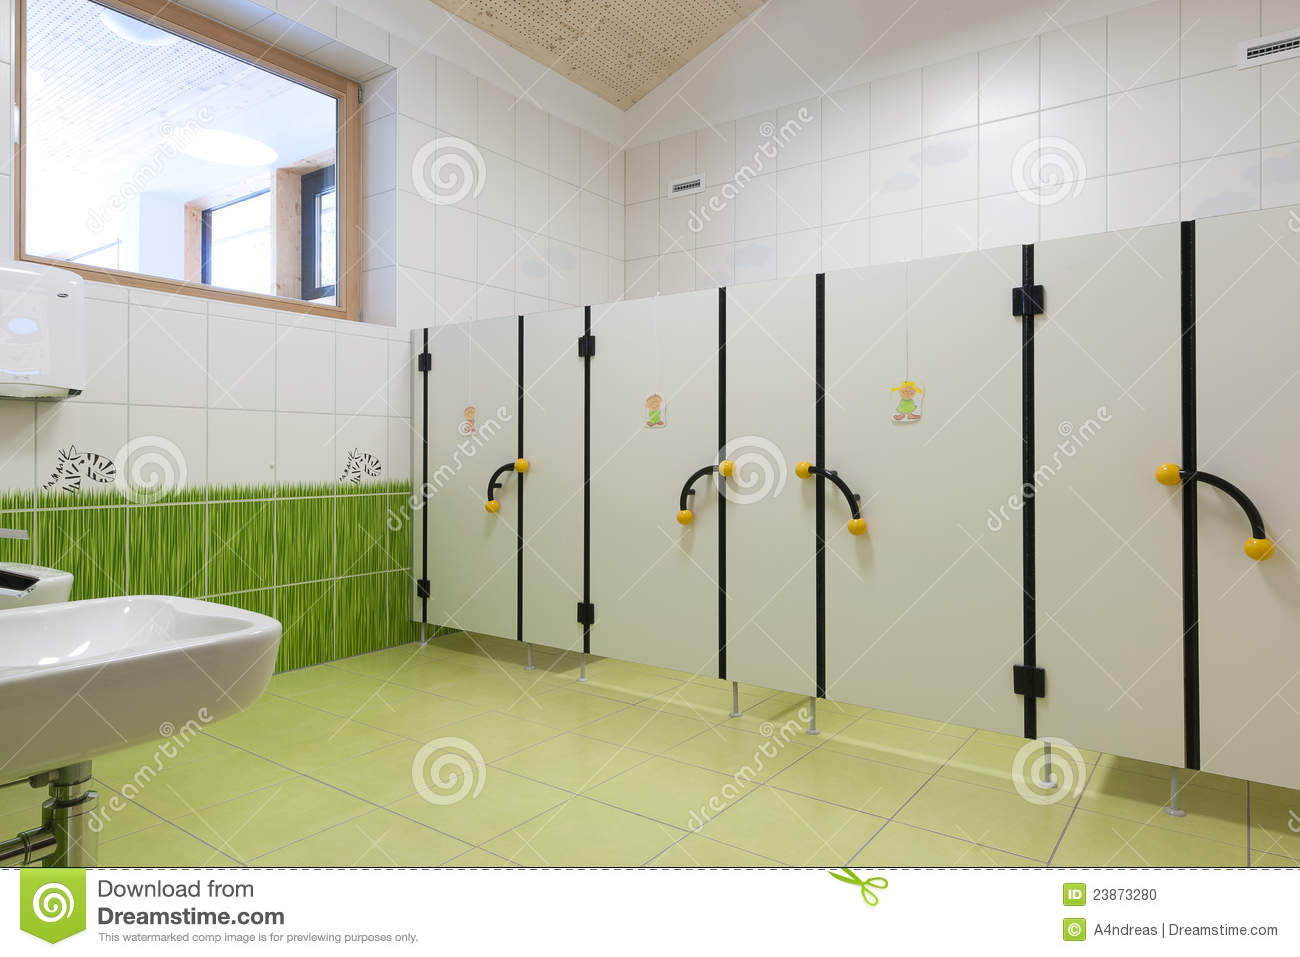 Wc Trennwand Kita Child Toilets In Kindergarten With Nice Green Gras Stock